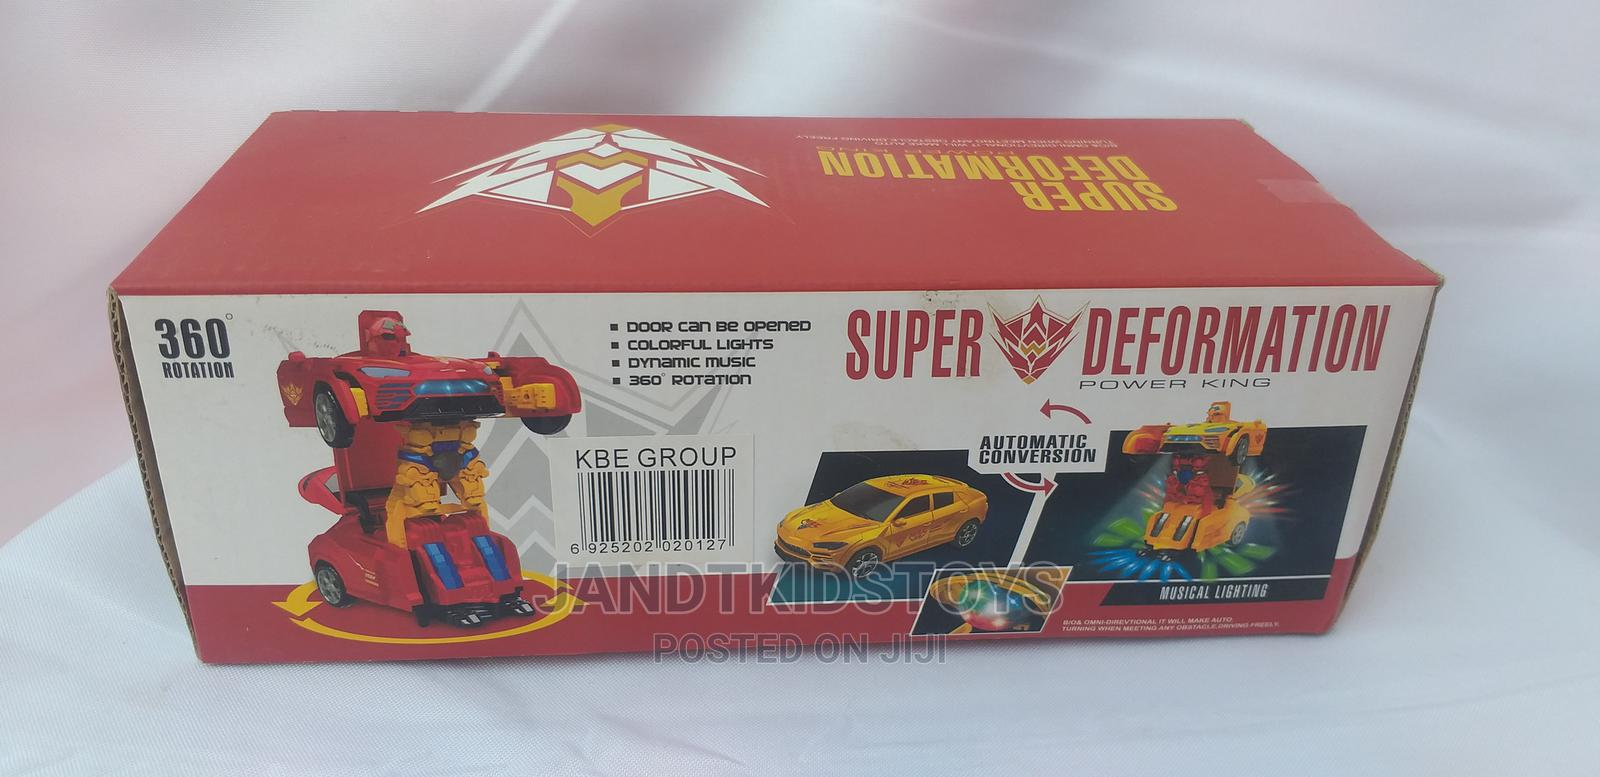 Deformation Toy Car Automatic Conversion Kids Gift Pack | Toys for sale in Gwarinpa, Abuja (FCT) State, Nigeria